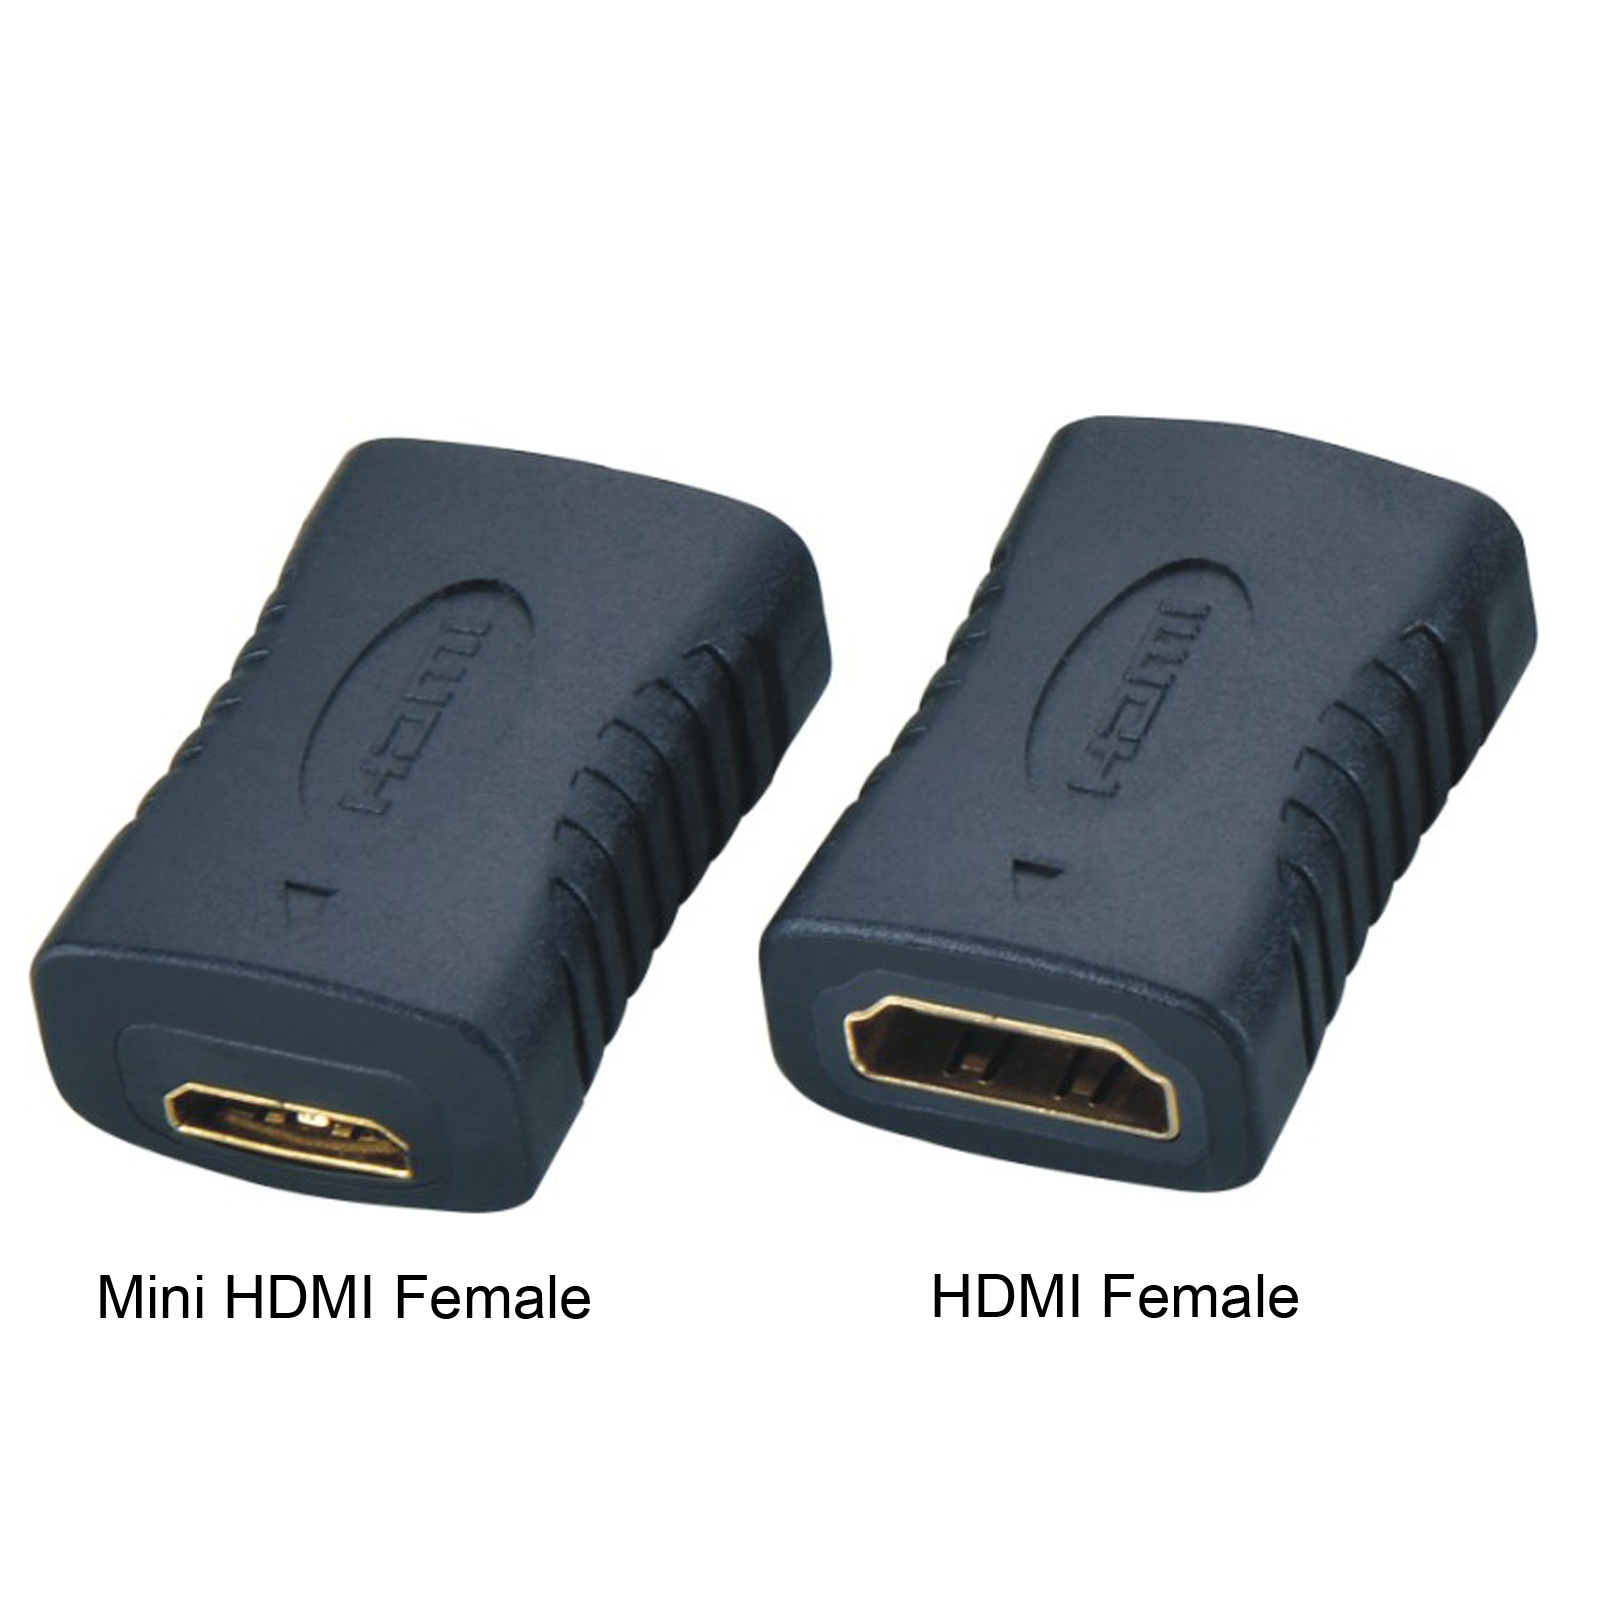 Cy mini hdmi female to a female version 1.4 c mini hdmi to hdmi female to female adapter black